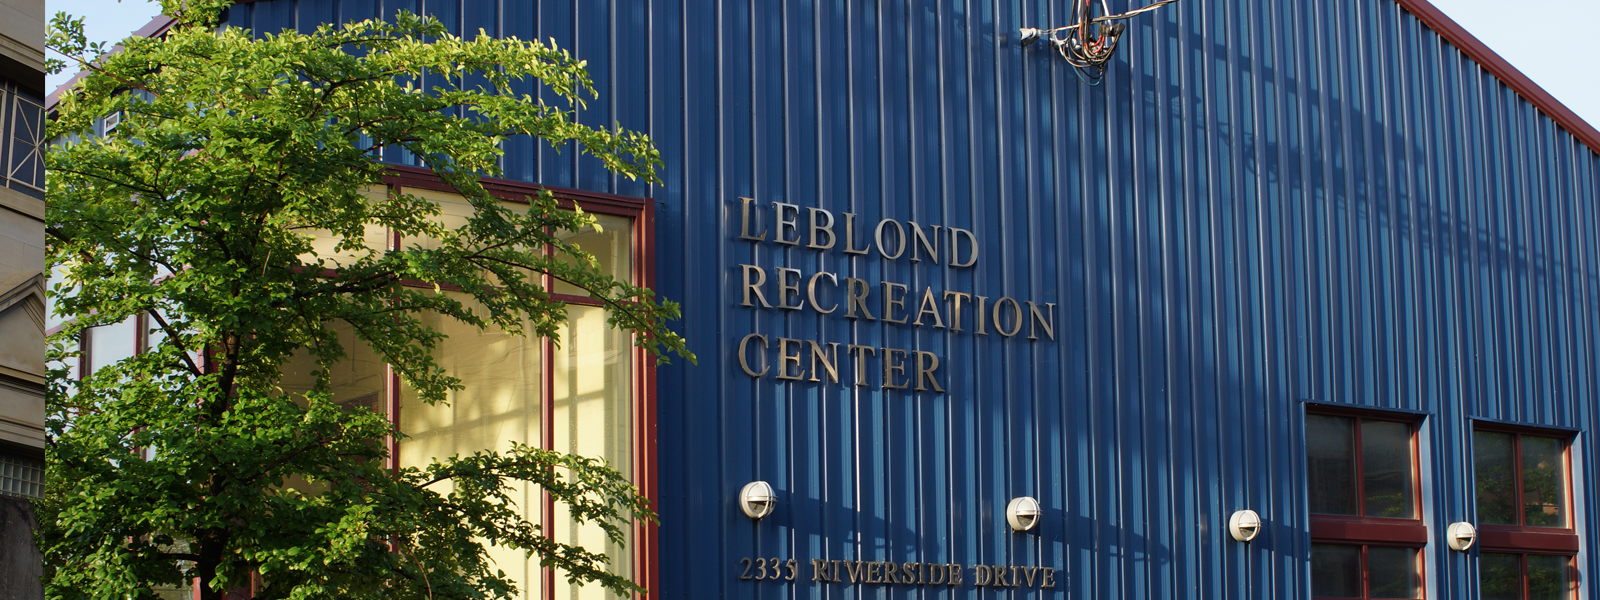 LeBlond Recreation Center